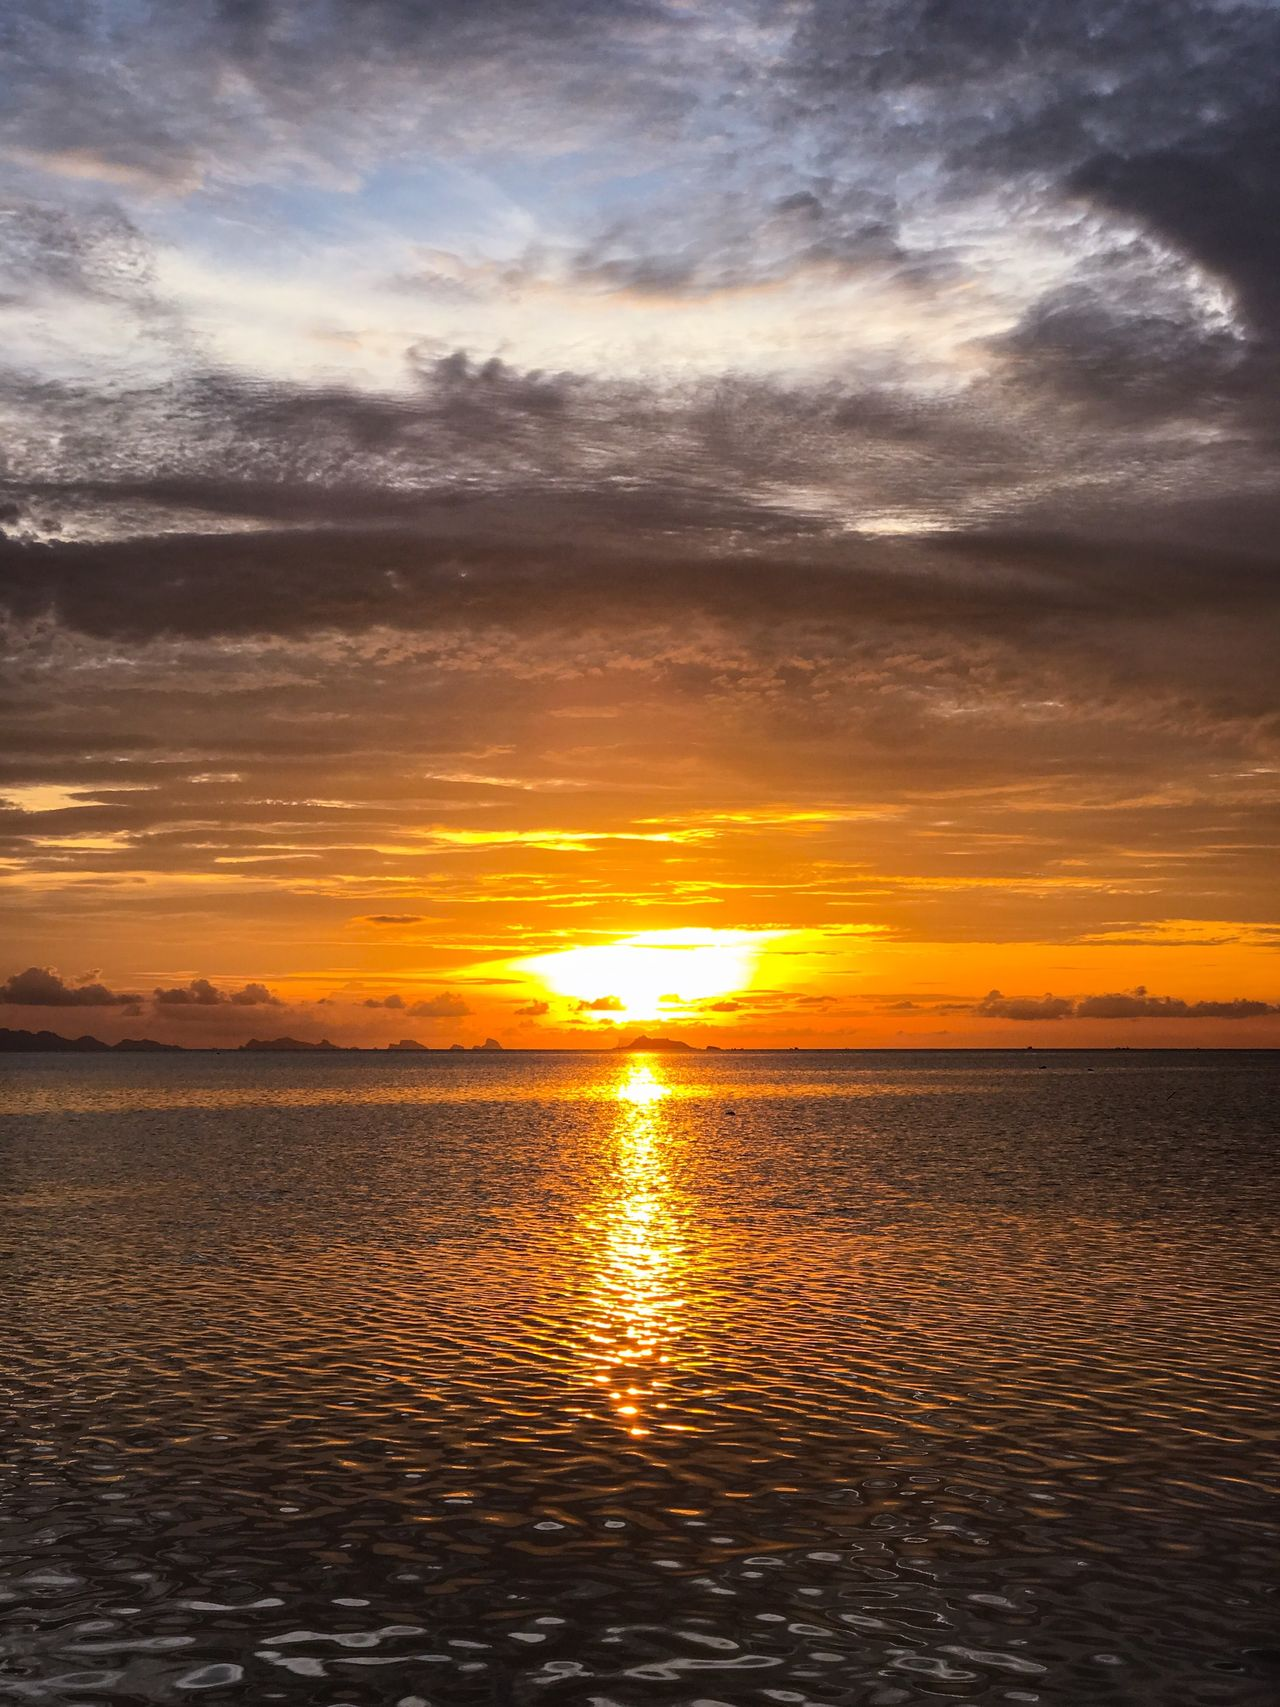 Beauty In Nature Cloud - Sky Dramatic Sky Idyllic Light Nature No People Orange Color Outdoors Reflection Relaxation Scenics Sea Seascape Seaview Sky Sun Sunbeam Sunset Tranquil Scene Tranquility Travel Photography Tropical Climate Twilight Water